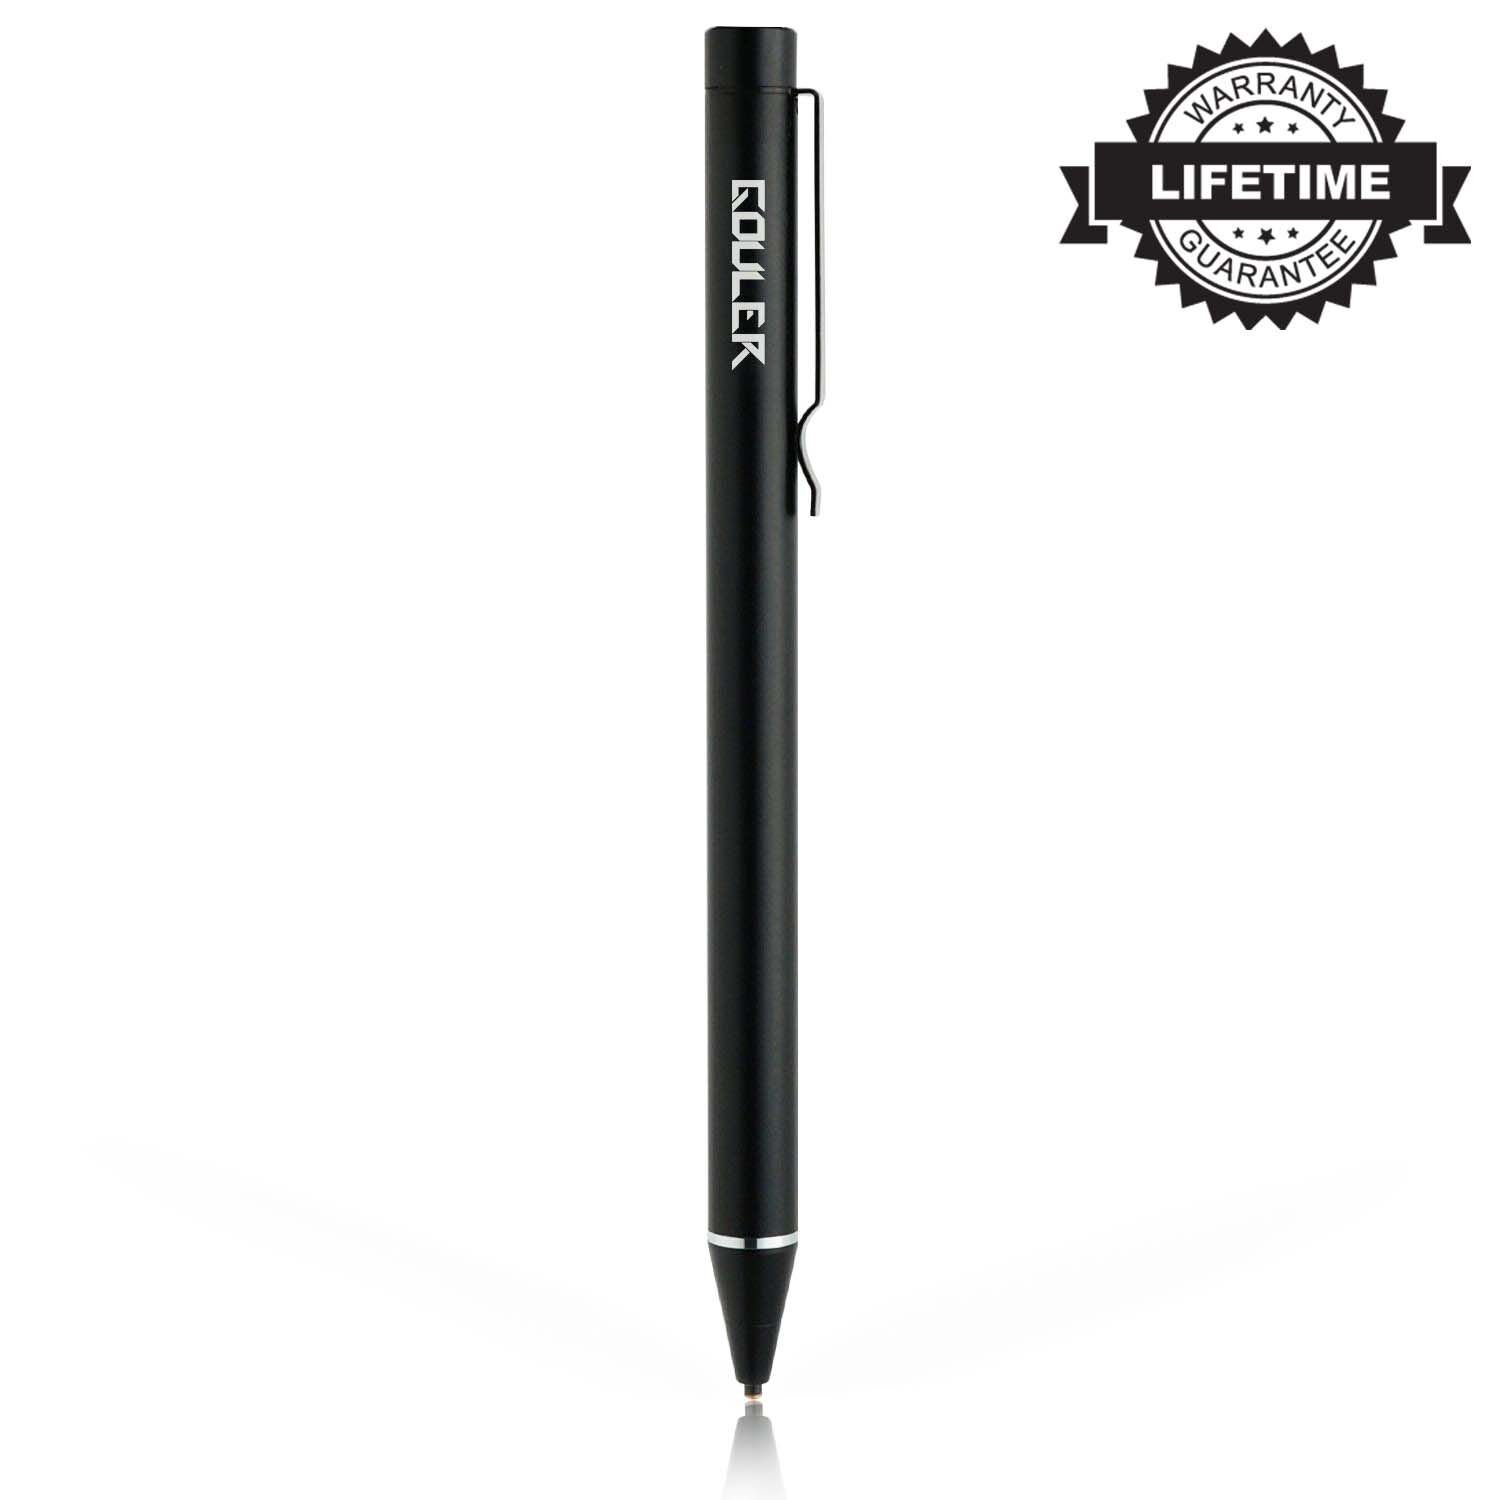 【Upgraded】High-Precision Active Stylus Pen with 1.6mm Fine Tip for iPad/iPhone X/8/8 Plus, Samsung Tablets and Other Capacitive Touch Screen Devices